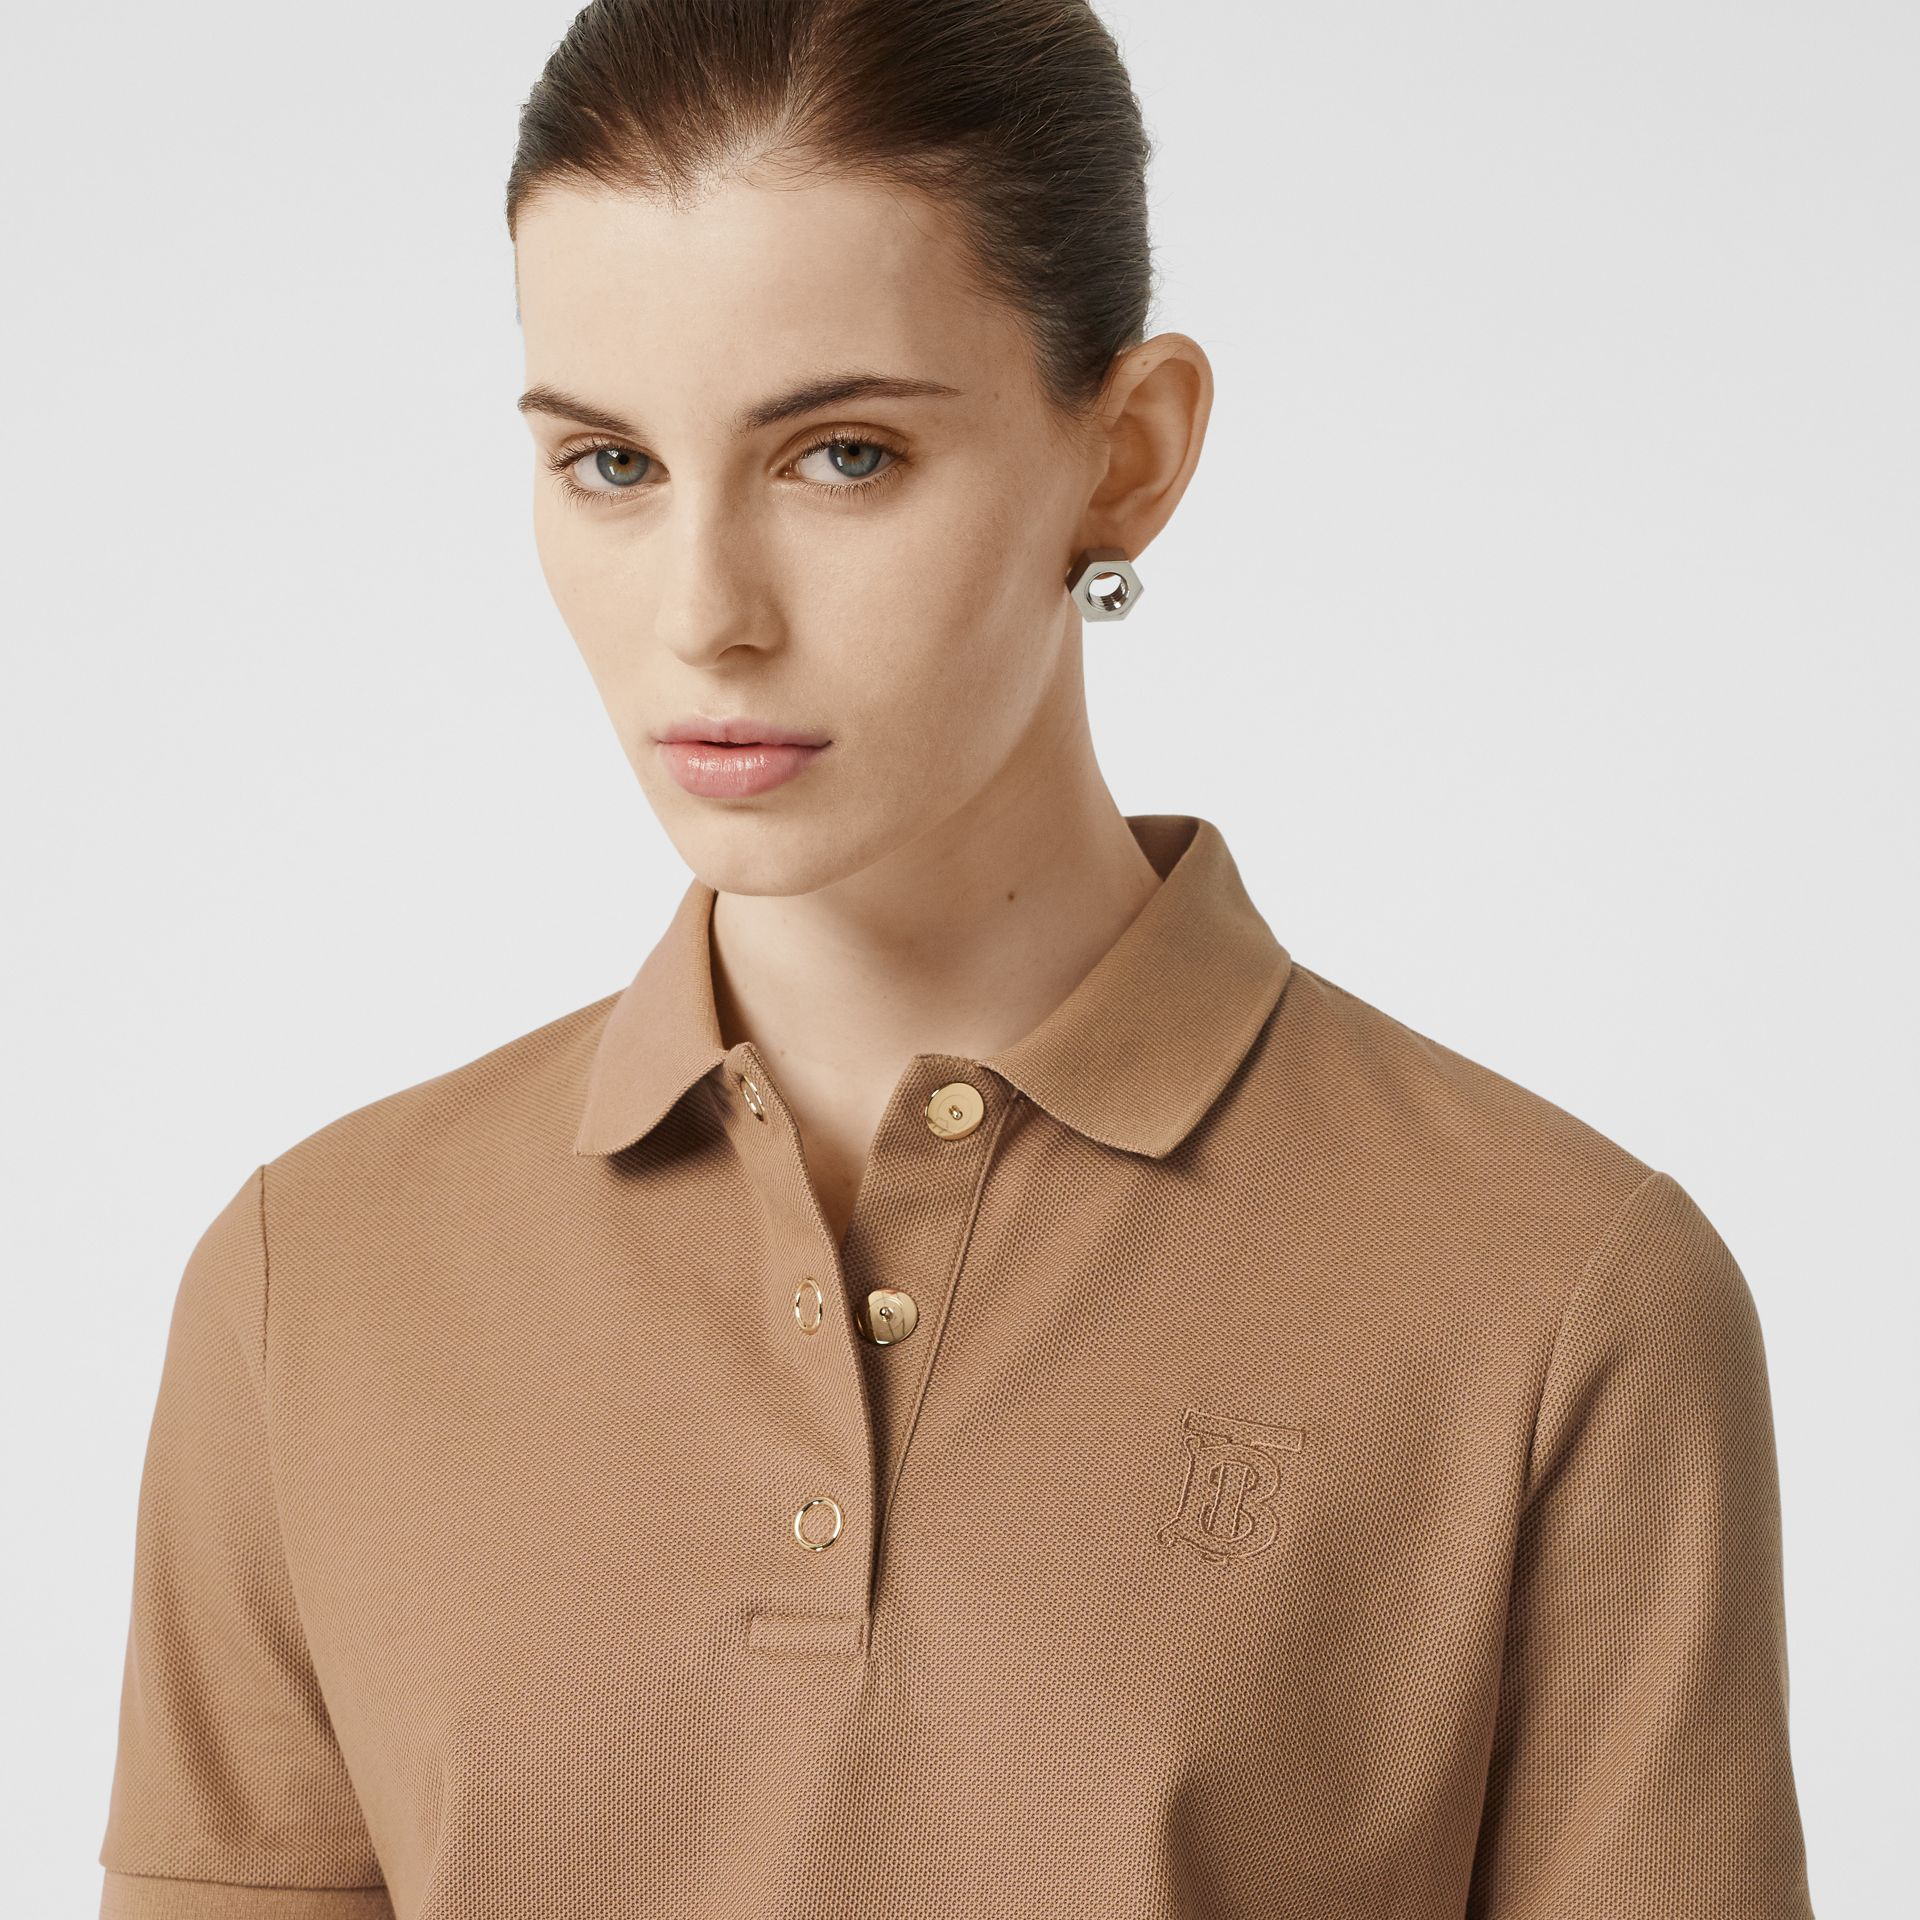 Monogram Motif Cotton Piqué Polo Shirt in Camel - Women | Burberry Singapore - gallery image 1